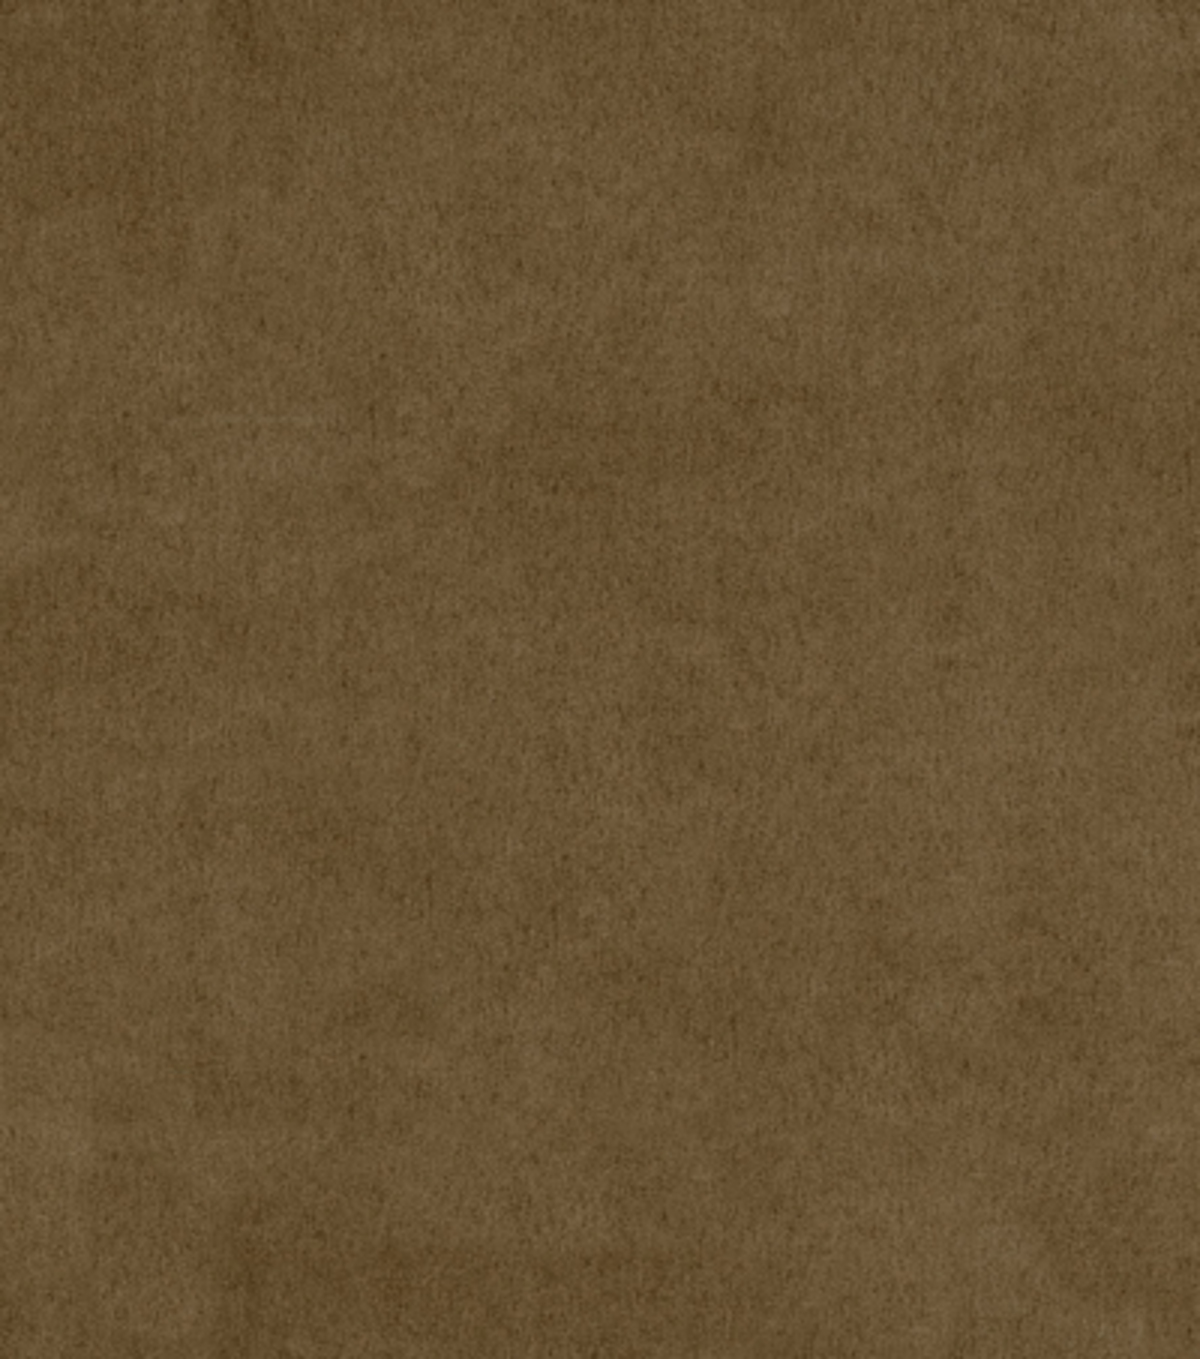 "Home Decor 8""x8"" Fabric Swatch-Richloom Sig Series Chateau Chocolate"